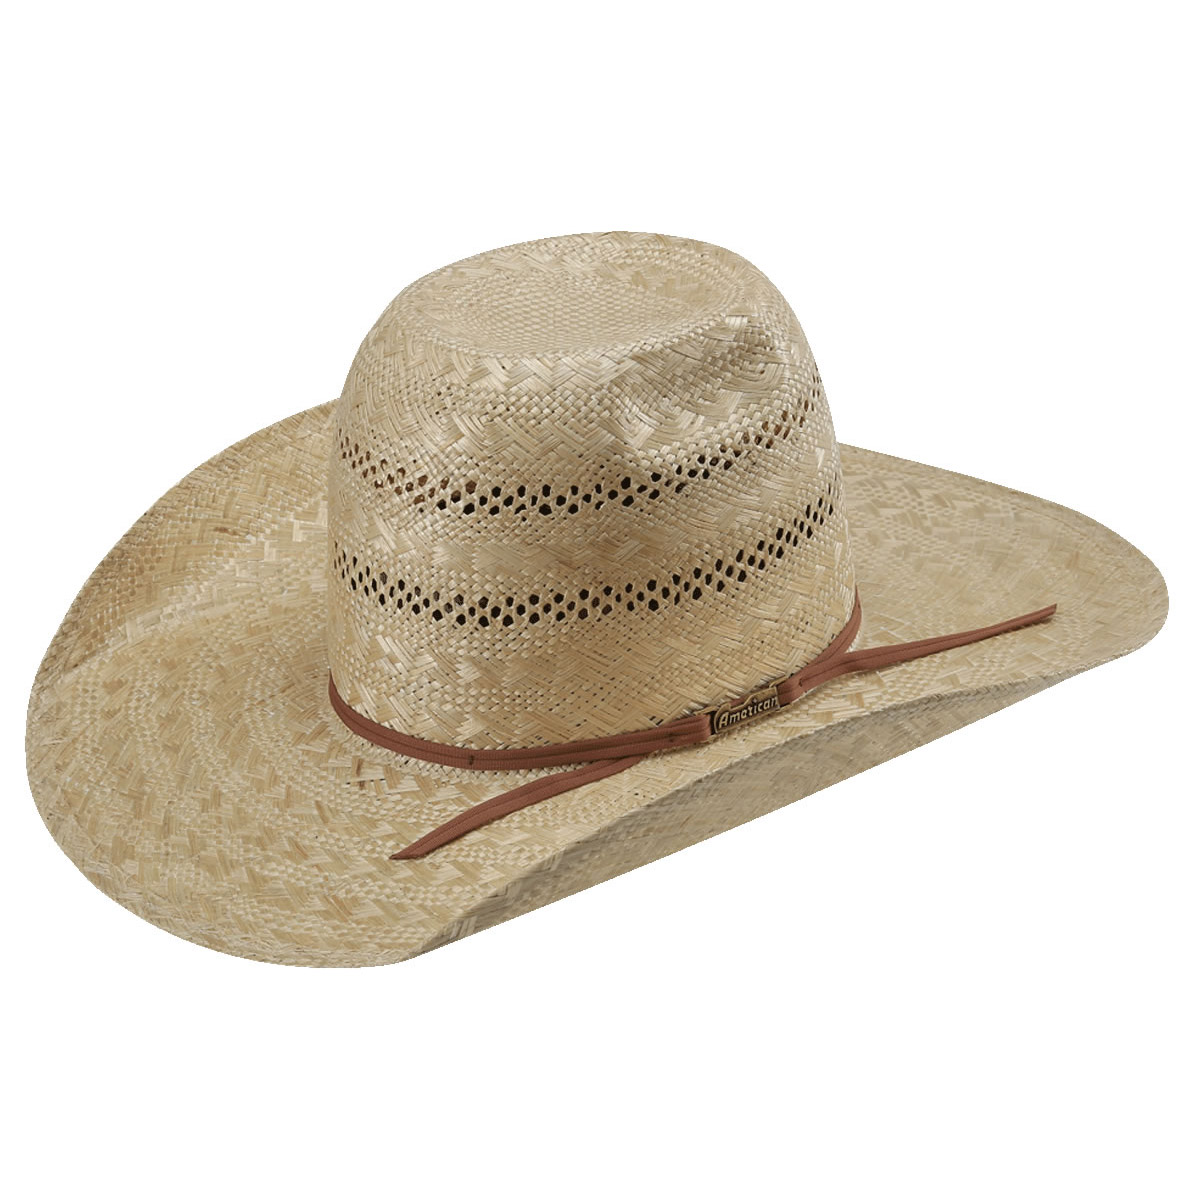 8f129893dd7 American Hat Co Sisal Vented Straw Hat. Tap to expand